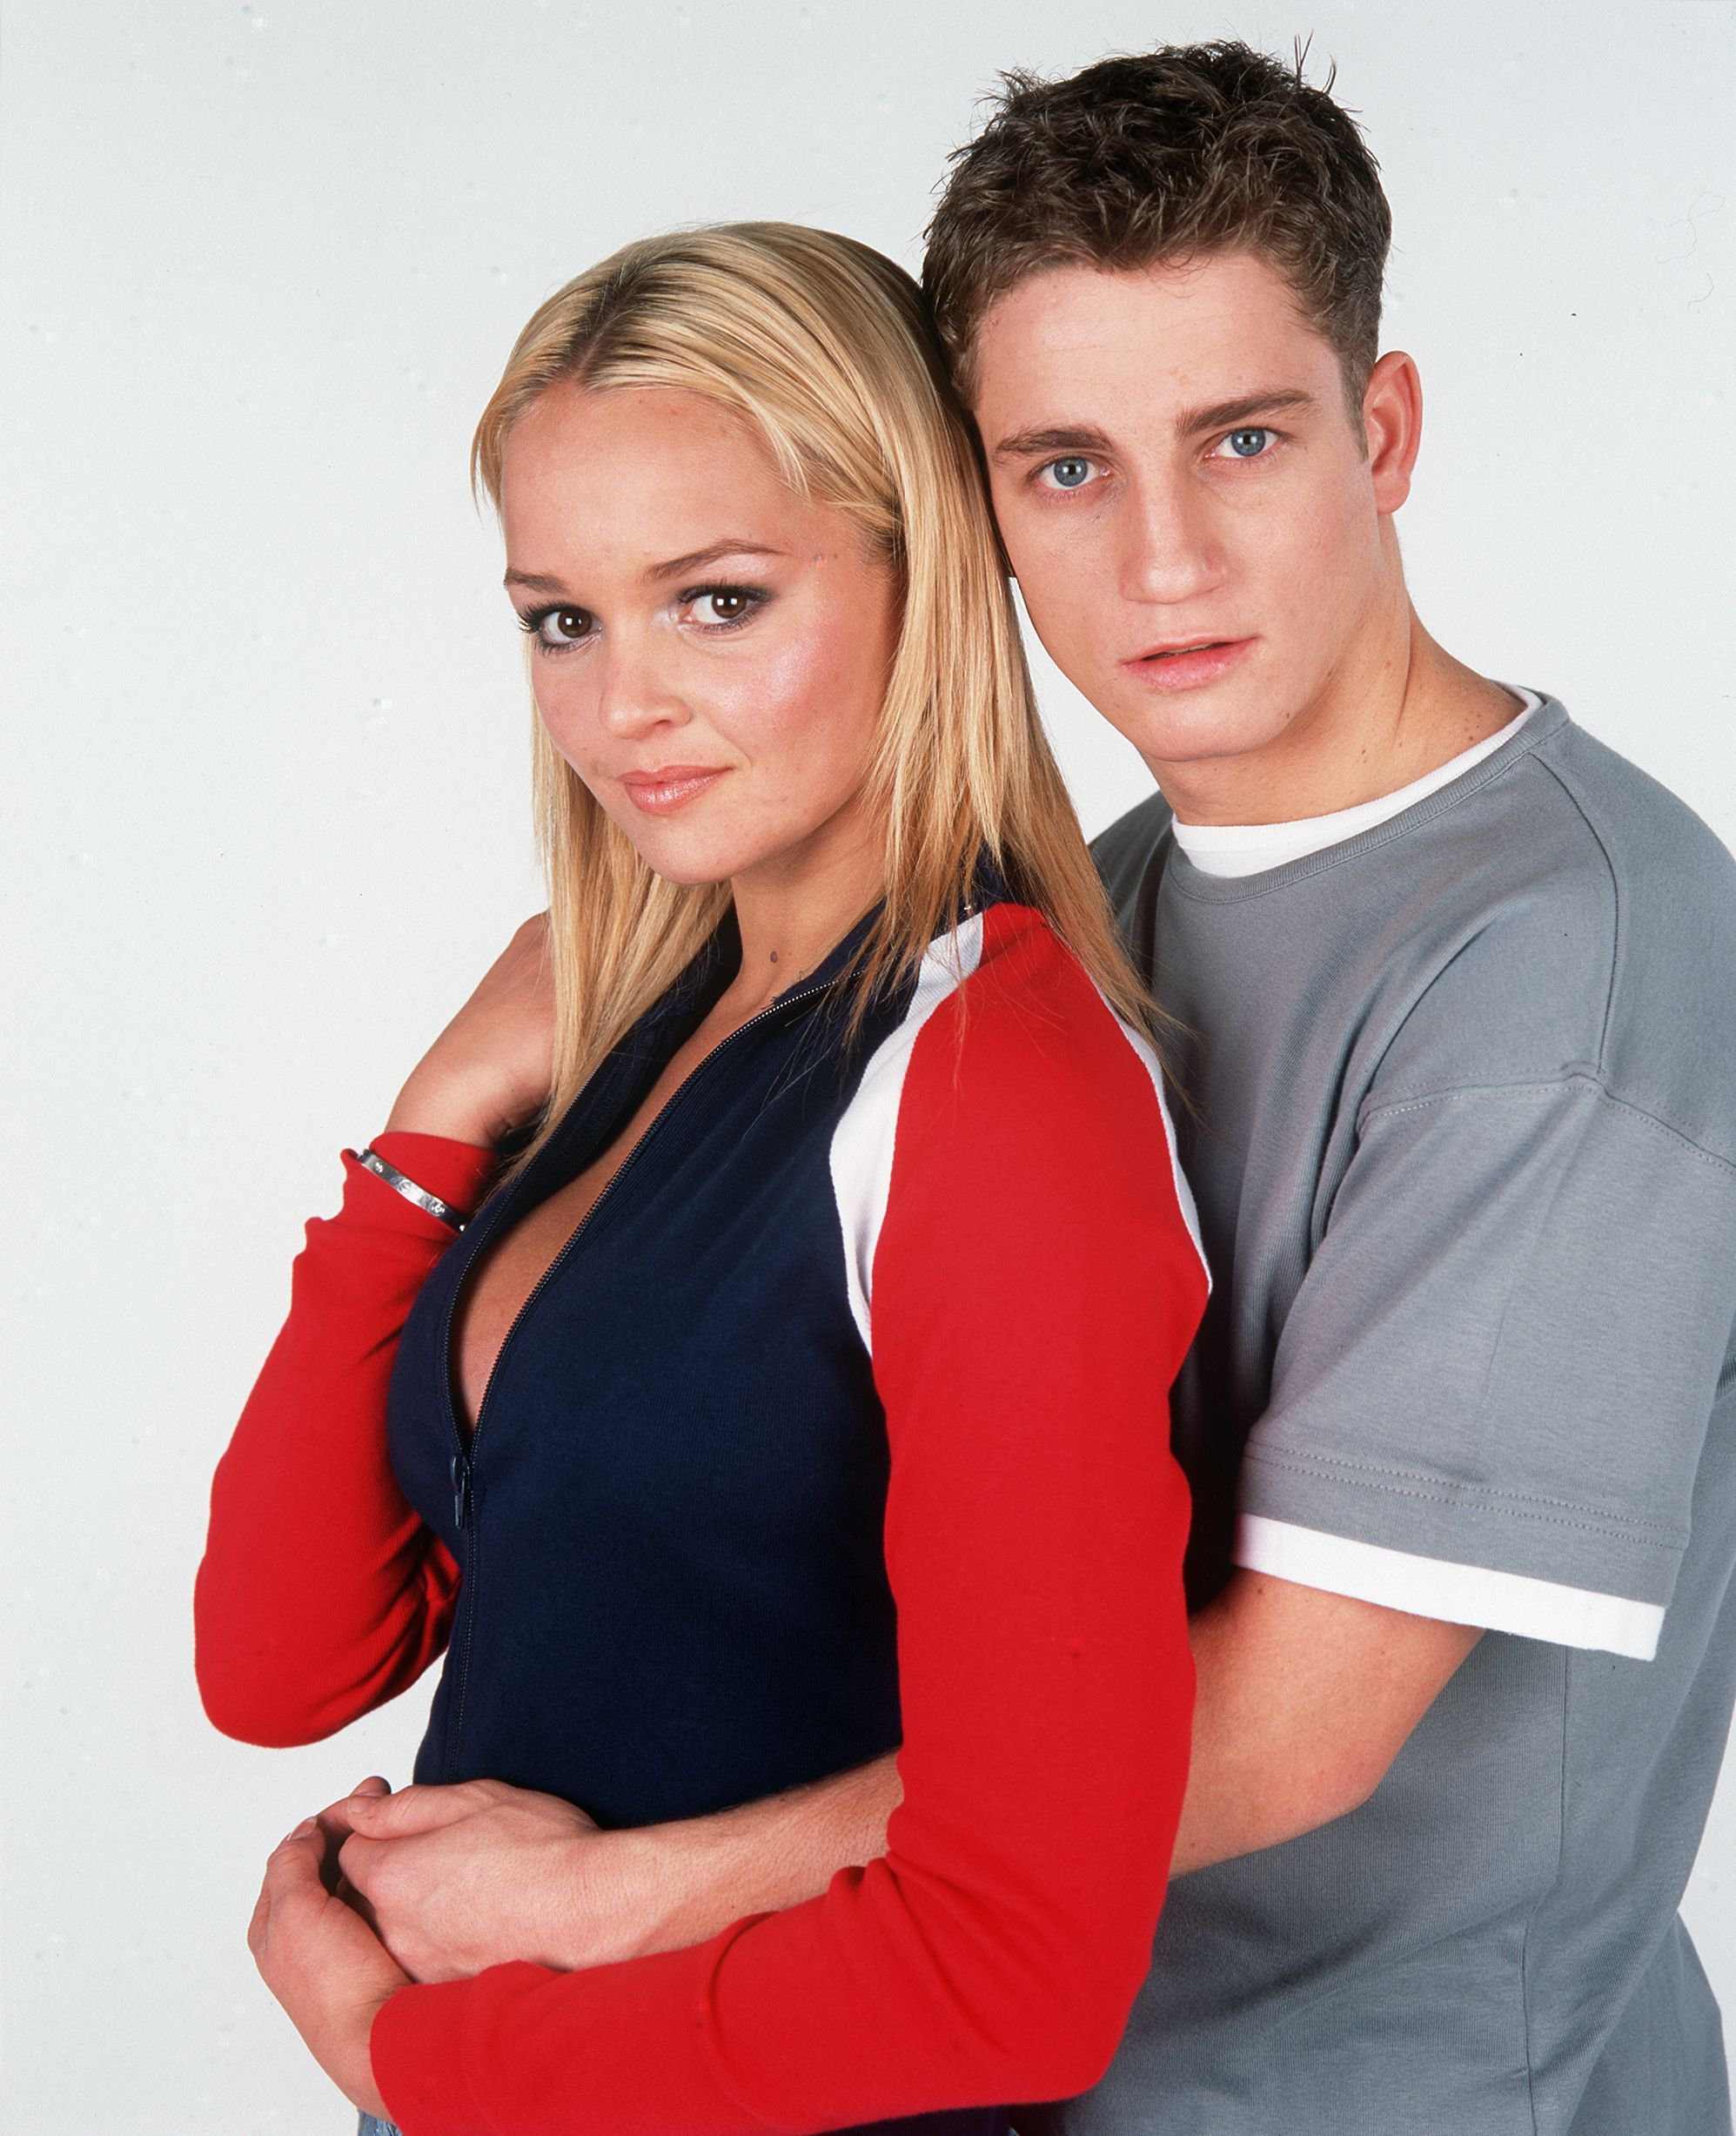 Mandatory Credit: Photo by IPC MAGAZINES: WHATS ON TV/REX/Shutterstock (341751t) JENNIFER ELLISON AND PHILIP OLIVIER BROOKSIDE TV STUDIO PORTRAIT - 2001